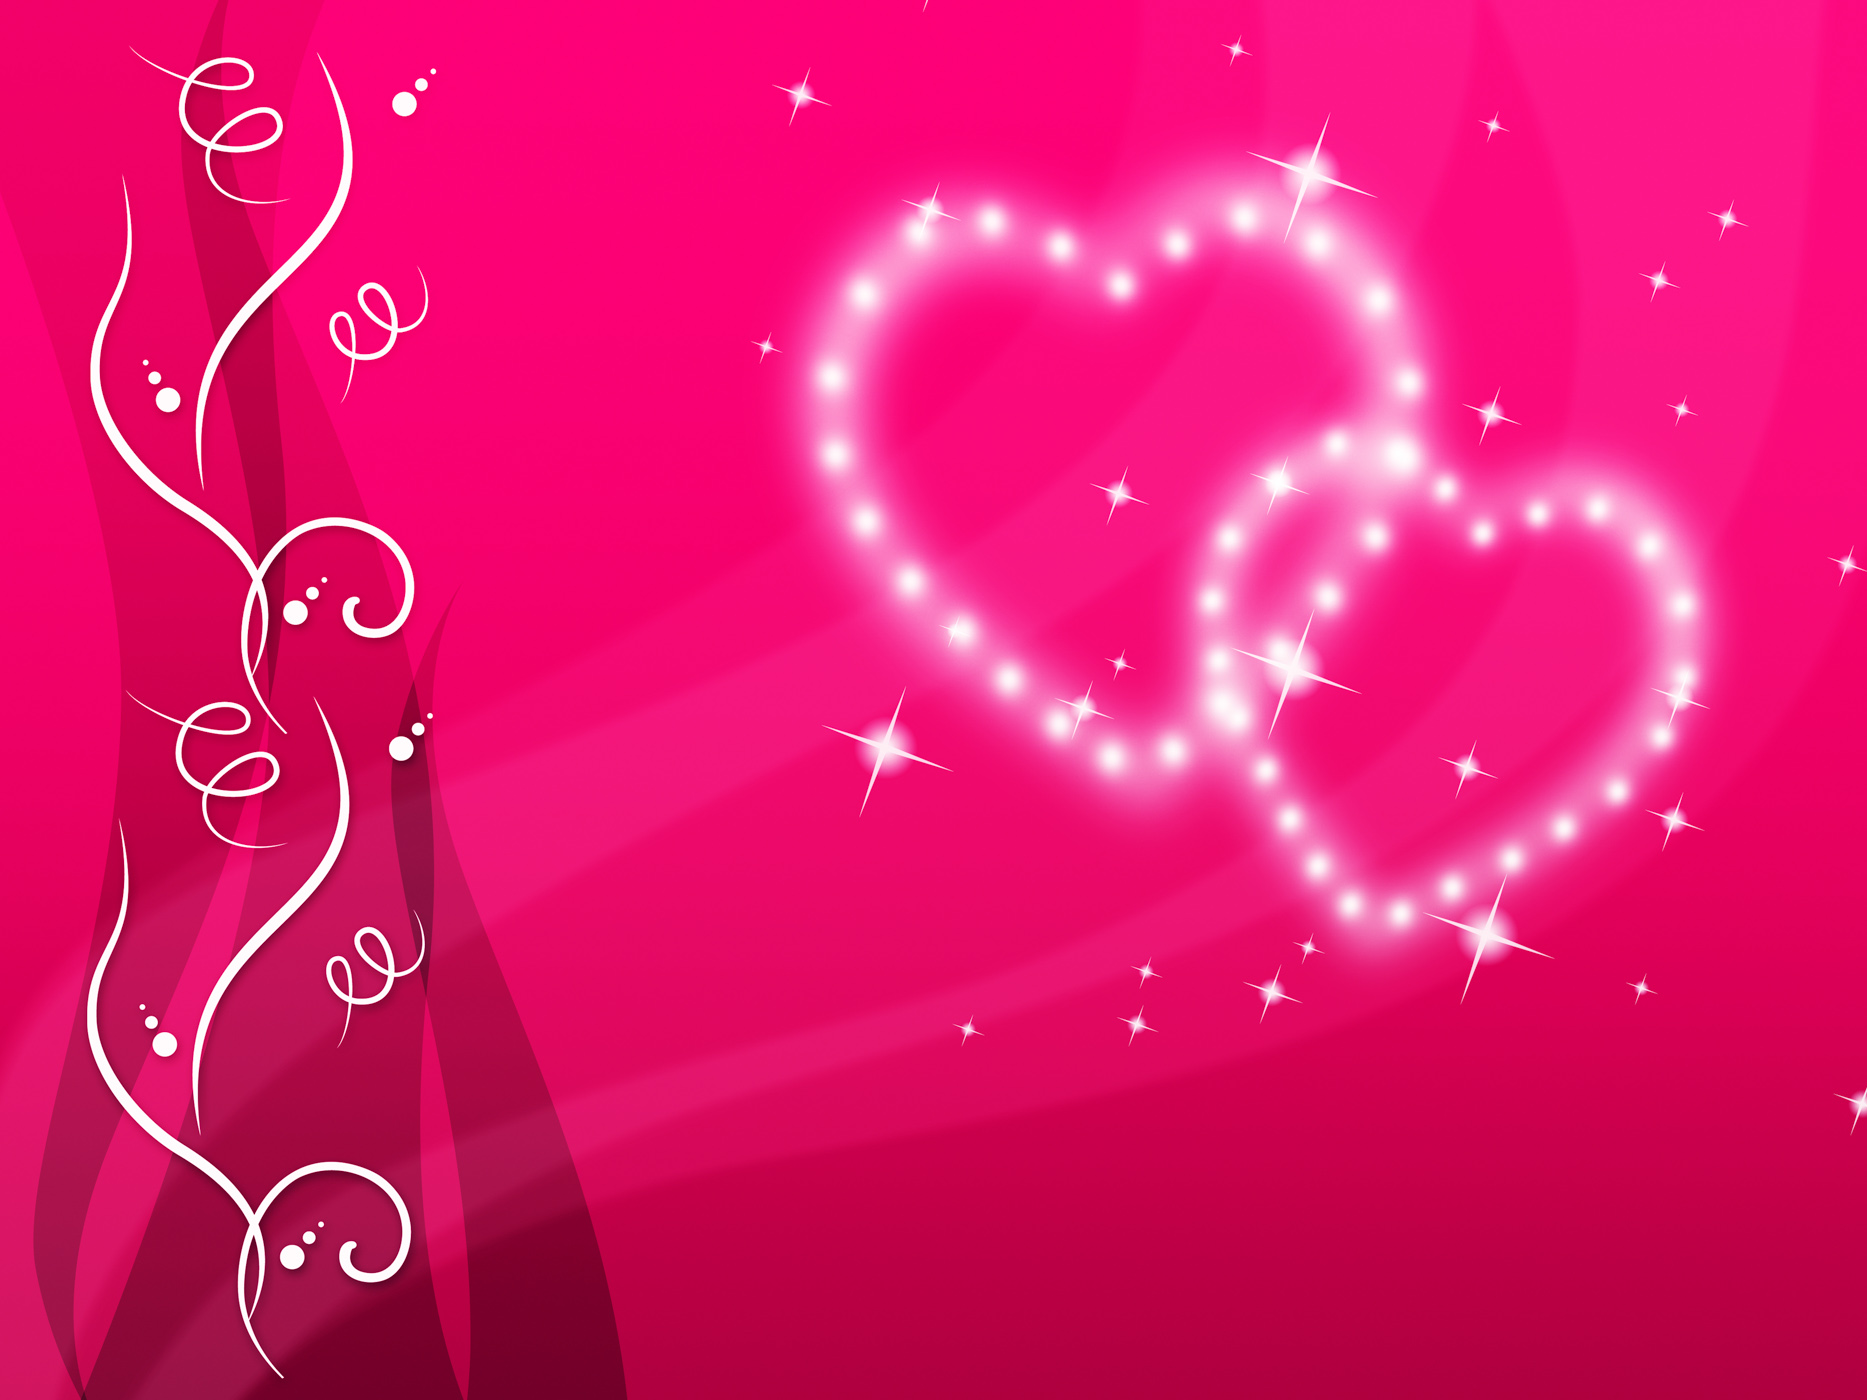 Pink Hearts Background Means Love Family And Floral, Affection, Lover, Twinkling, Tenderness, HQ Photo